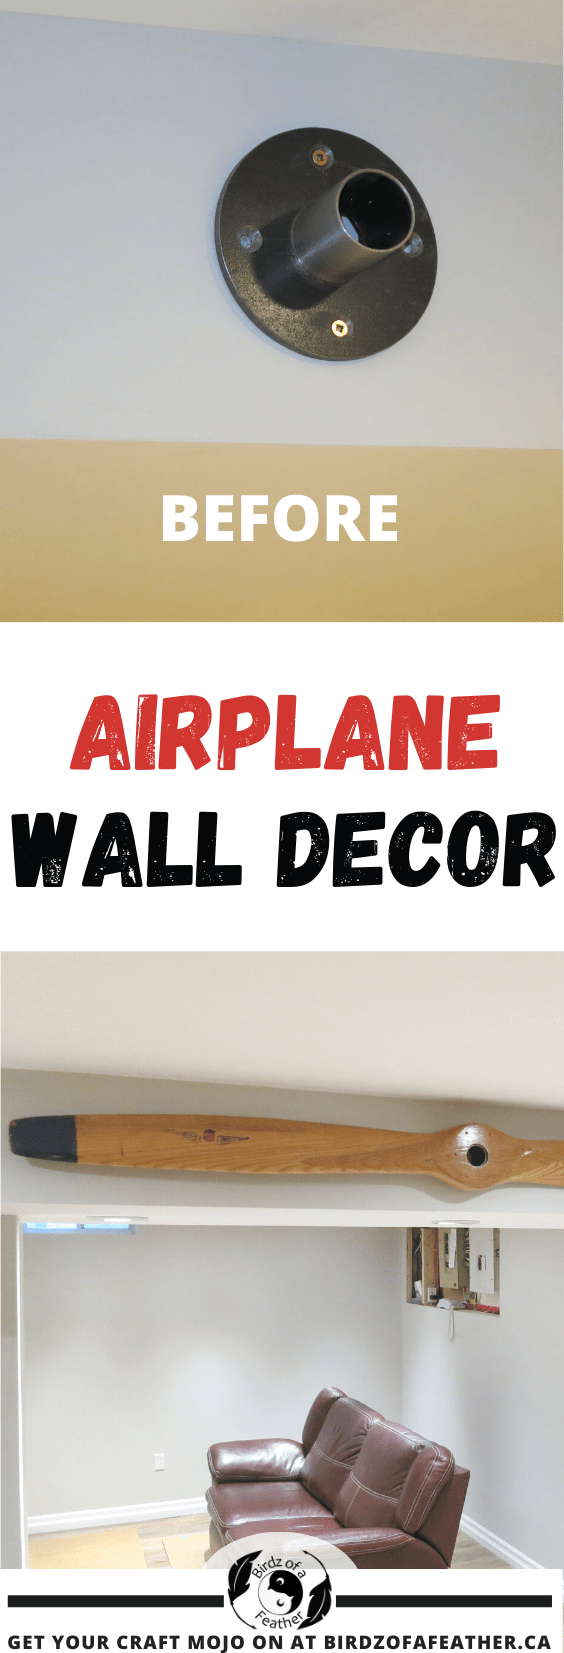 Airplane wall decor is the solution to that wasted space hiding mechanical runs. I'm talking about bulkheads. Today we're 'propelling' them to new heights! Birdz of a Feather | airplane propeller wall decor | airplane propeller decor | propeller wall decor | wooden airplane propeller decor | aviation decor | airplane propeller diy | airplane propeller decor aviation art | bulkhead decor | bulkhead decorating ideas | bulkhead decor ideas